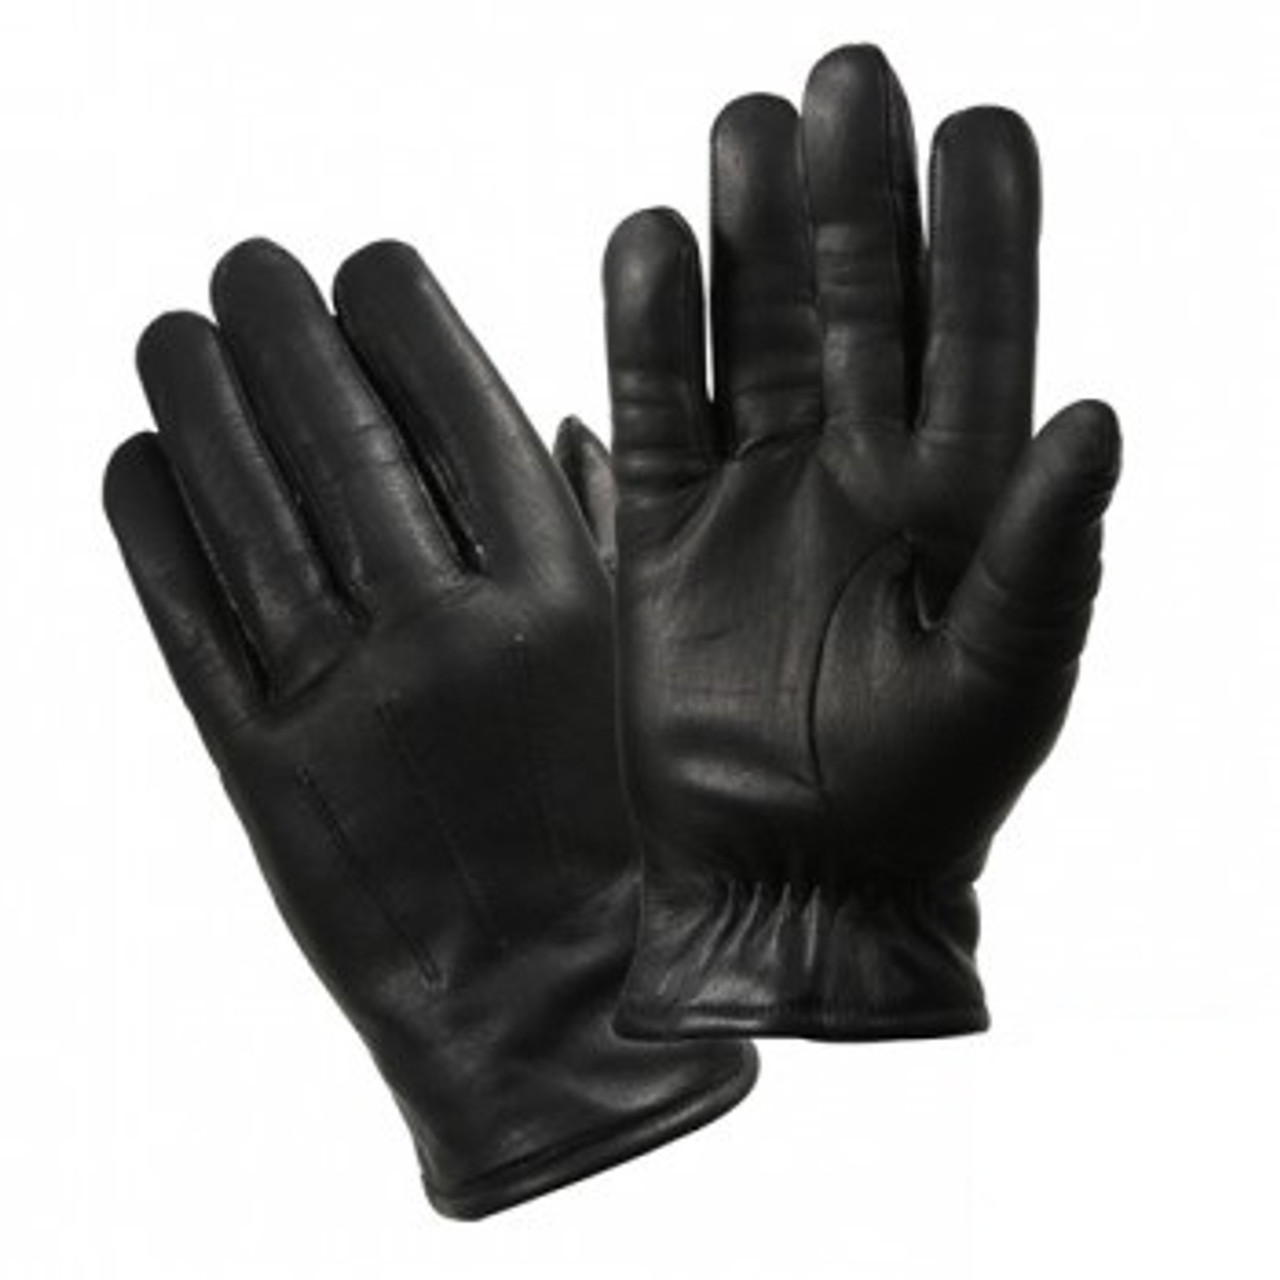 Leather Police Gloves from Hessen Antique